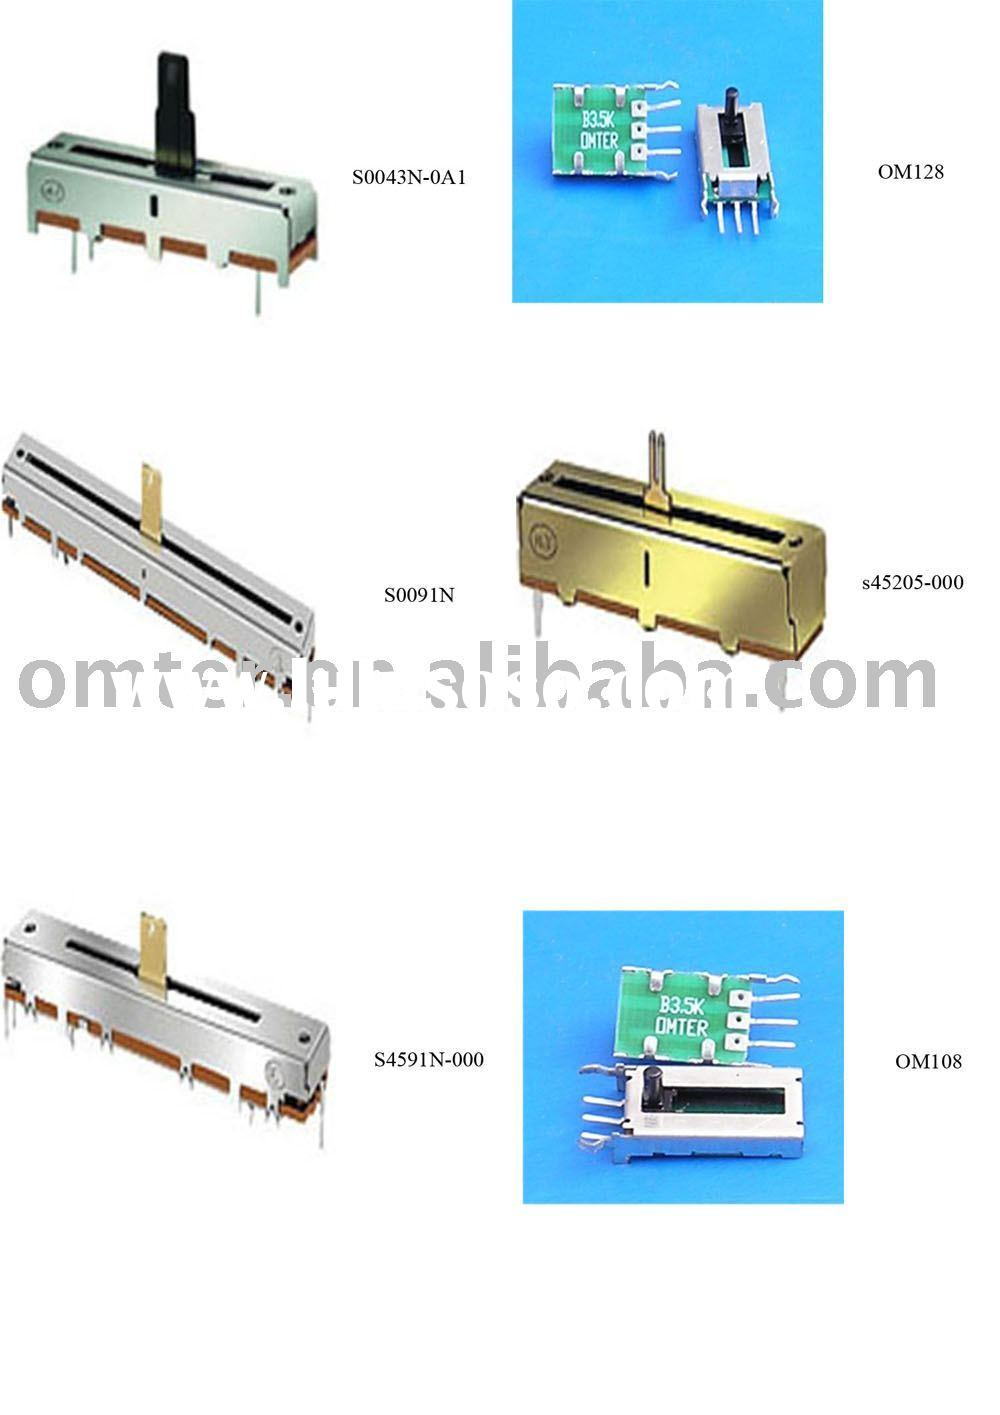 potentiometer(slide potentiometer,variable resistor potentiometer)